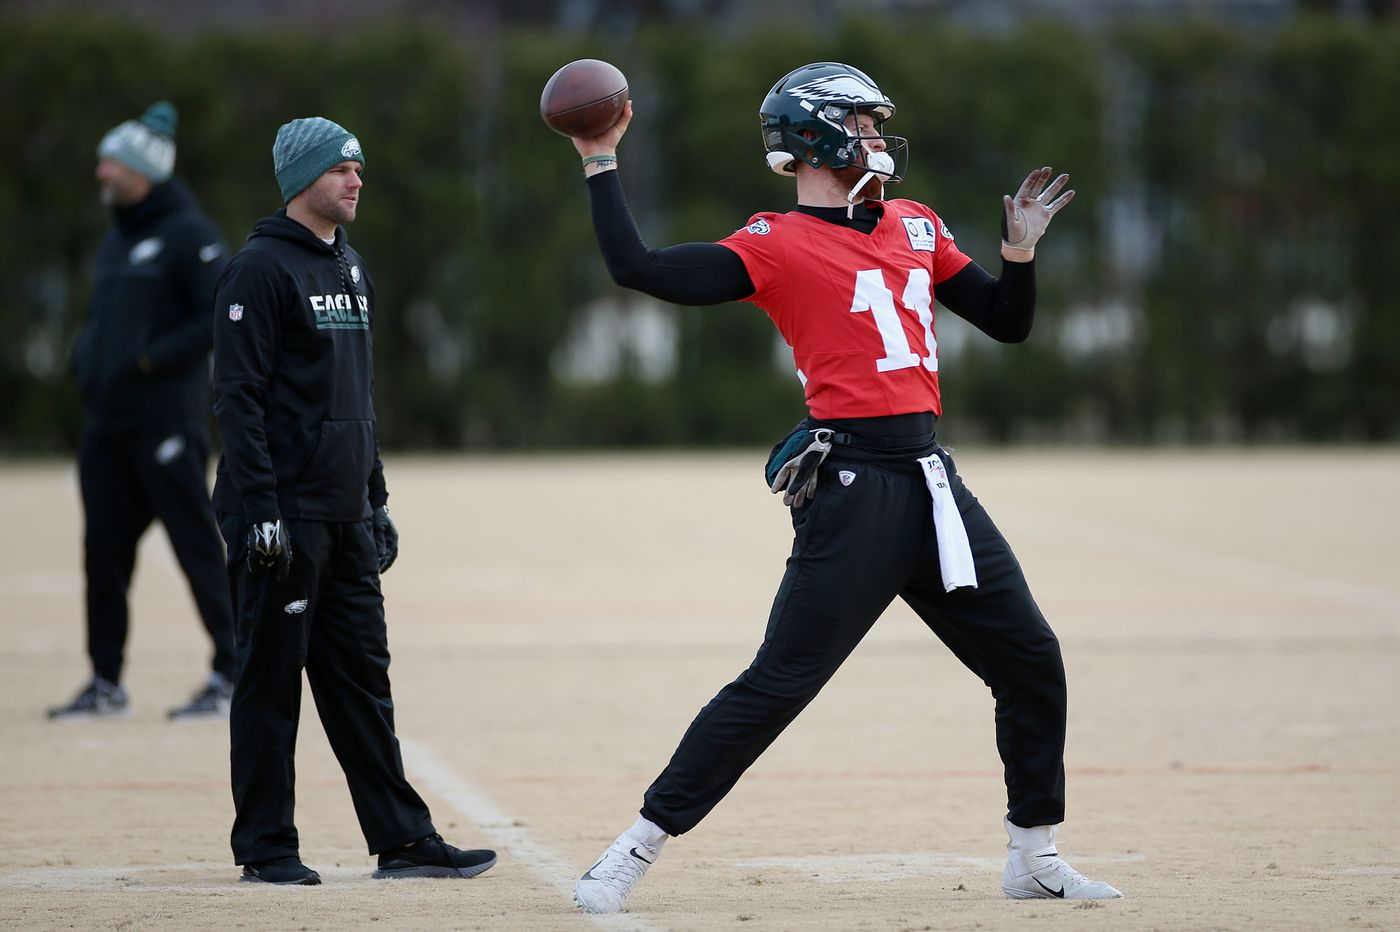 Eagles position coaches are taking heat. Do Doug Pederson and the players feel the teaching is effective?